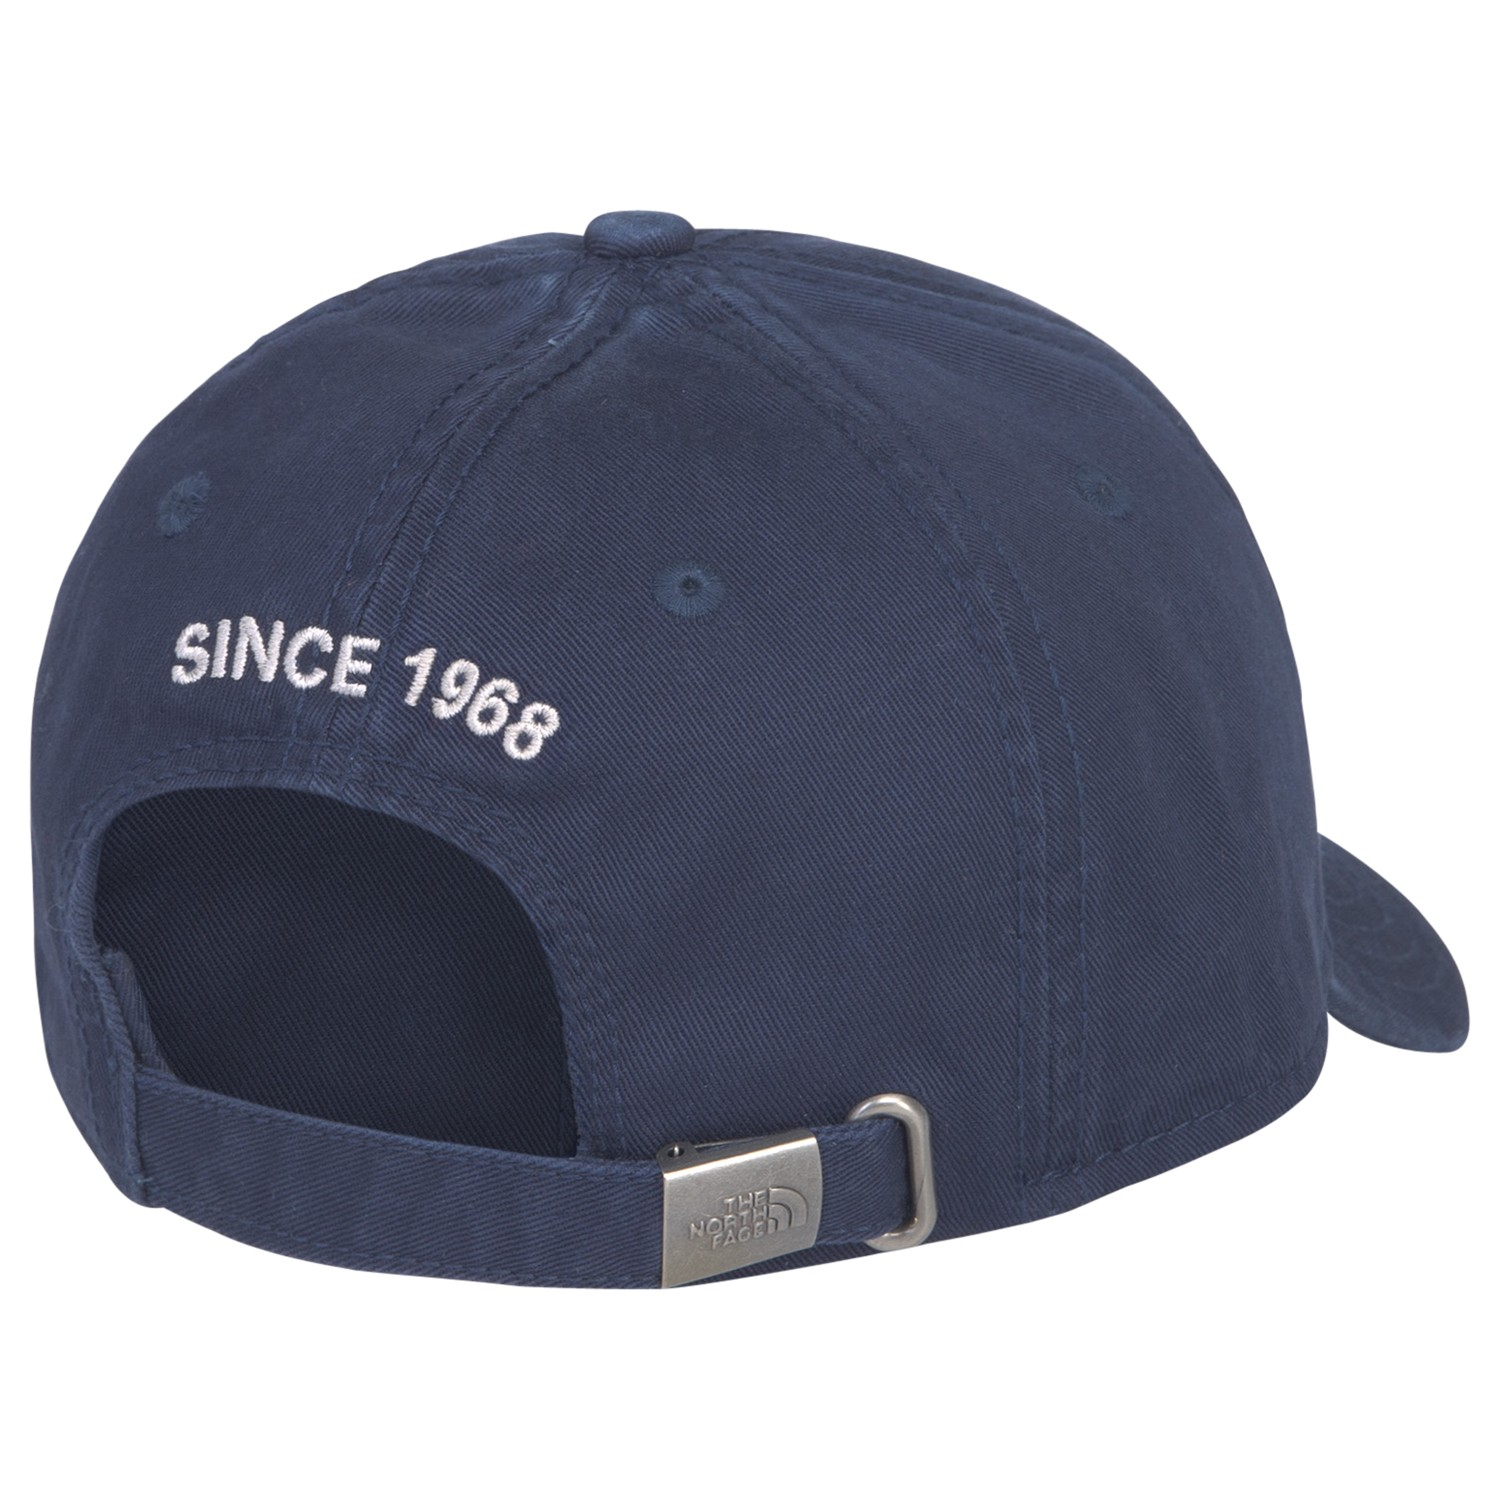 The North Face 68 Classic Hat in Blue for Men - Lyst a32c0dc9512